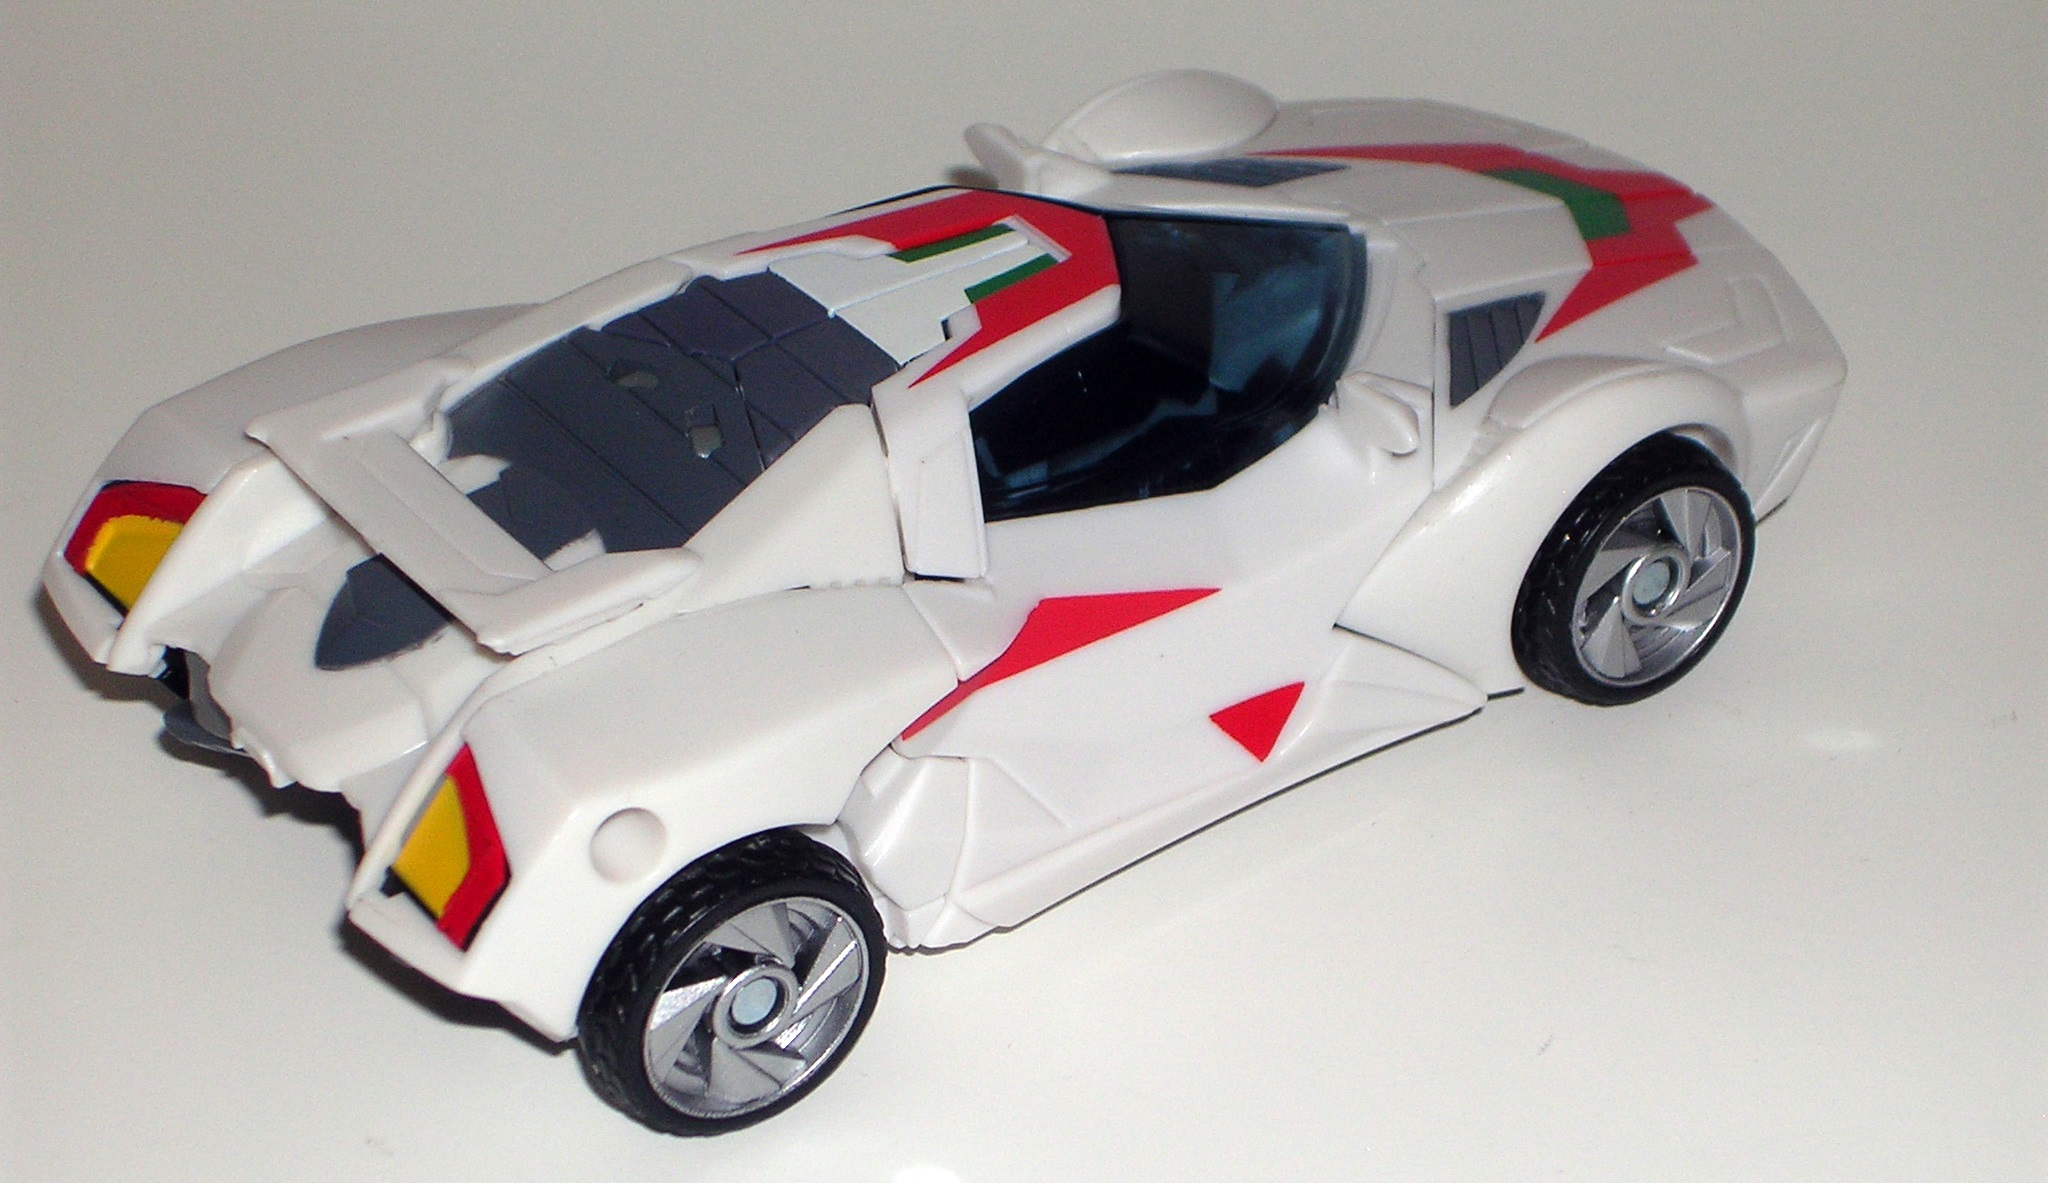 Transformers prime wheeljack car - photo#18